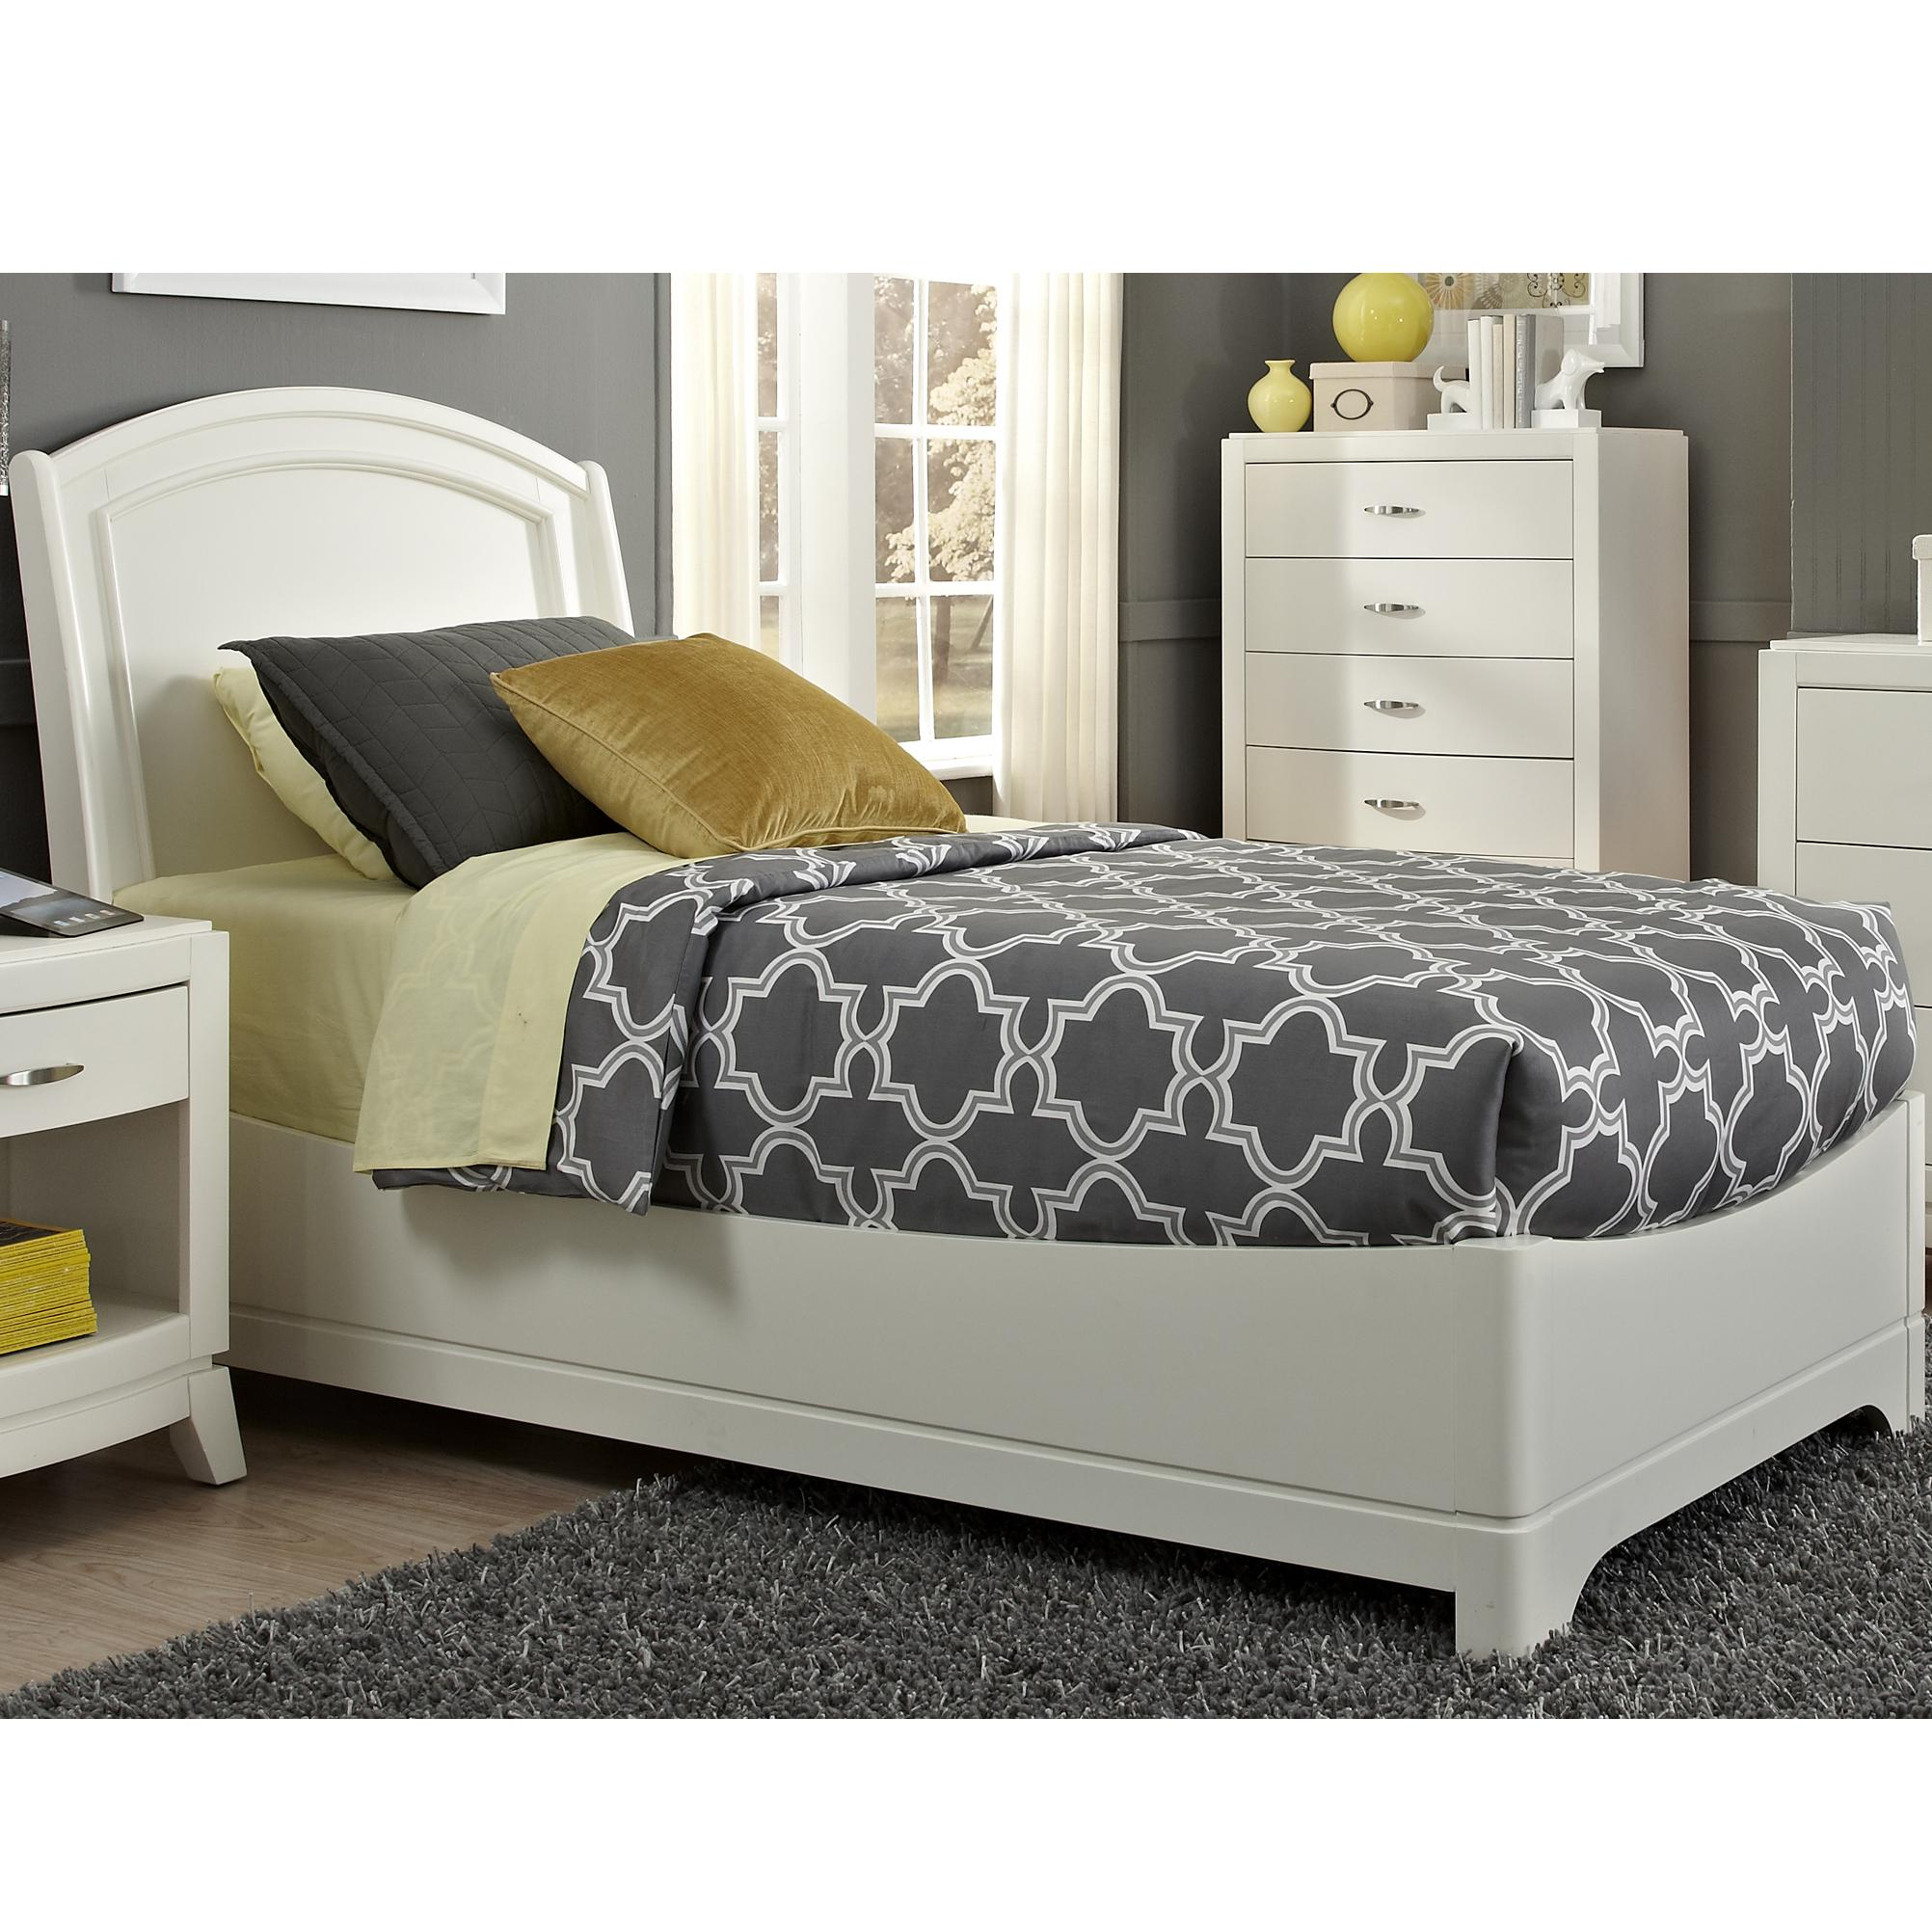 Liberty Furniture Avalon II Full Platform Bed - Item Number: 205-YBR-FPL